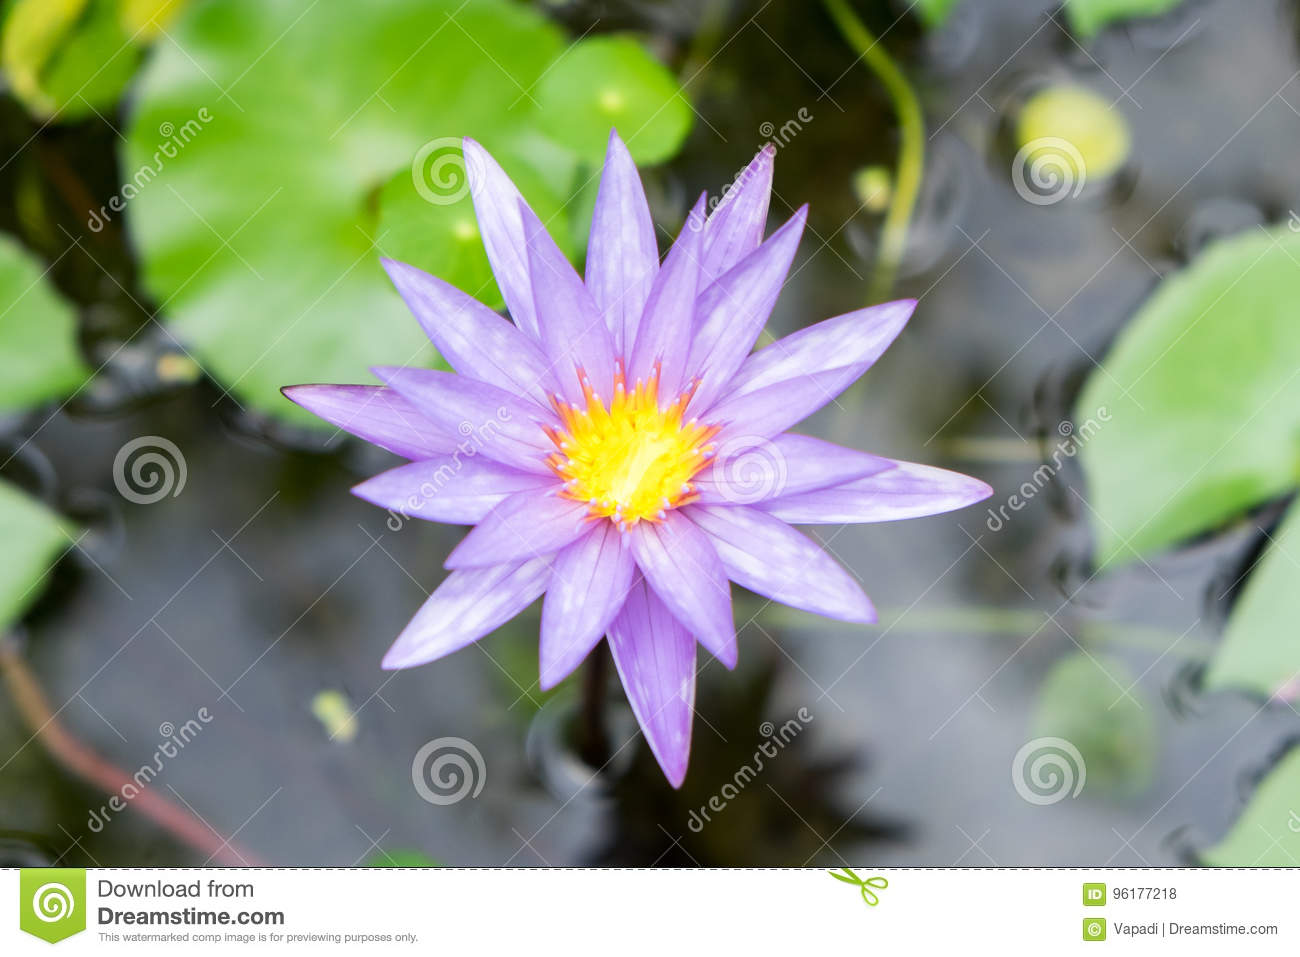 Topview of lotus flower stock photo image of bloom saturated download topview of lotus flower stock photo image of bloom saturated 96177218 izmirmasajfo